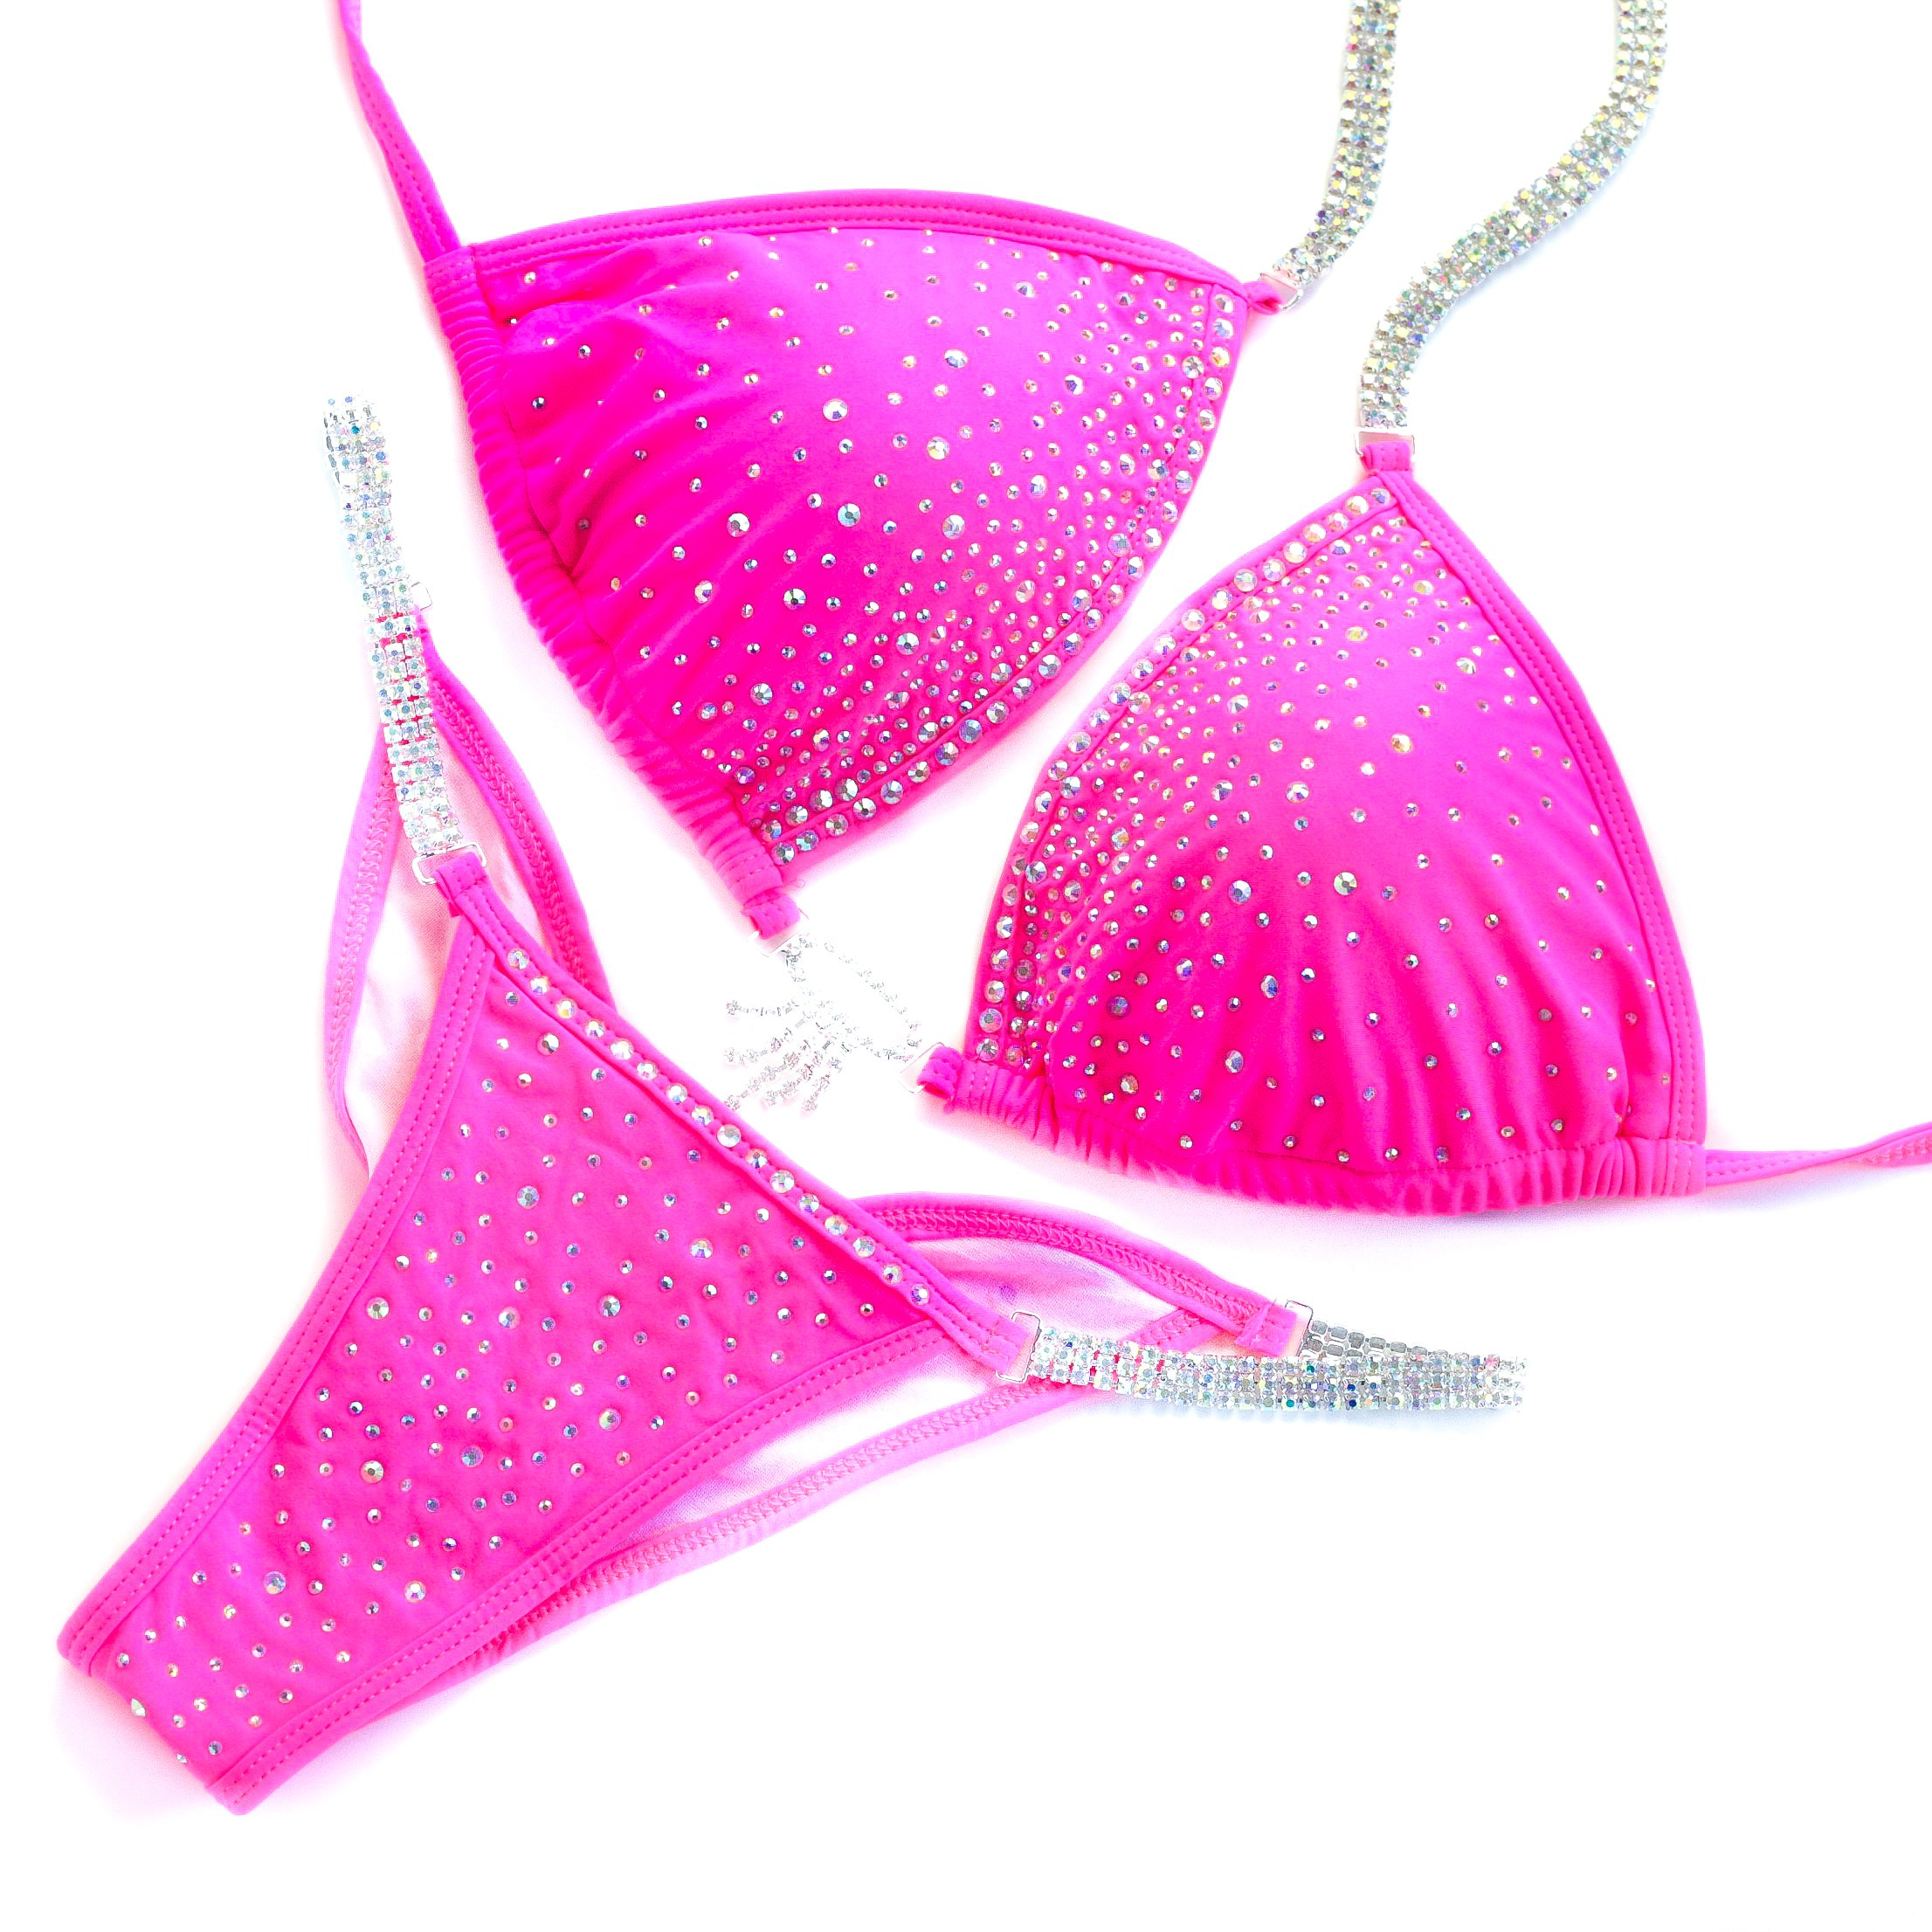 Vicky Ross Fit Competition Bikini Suit NPC IFBB WBFF For Women Rhinestone Connectors | Brazilian Scrunch |Pink ((M) B-C-D/Hips 37''-38'' (Cup Dimensions W 7.5''; H)